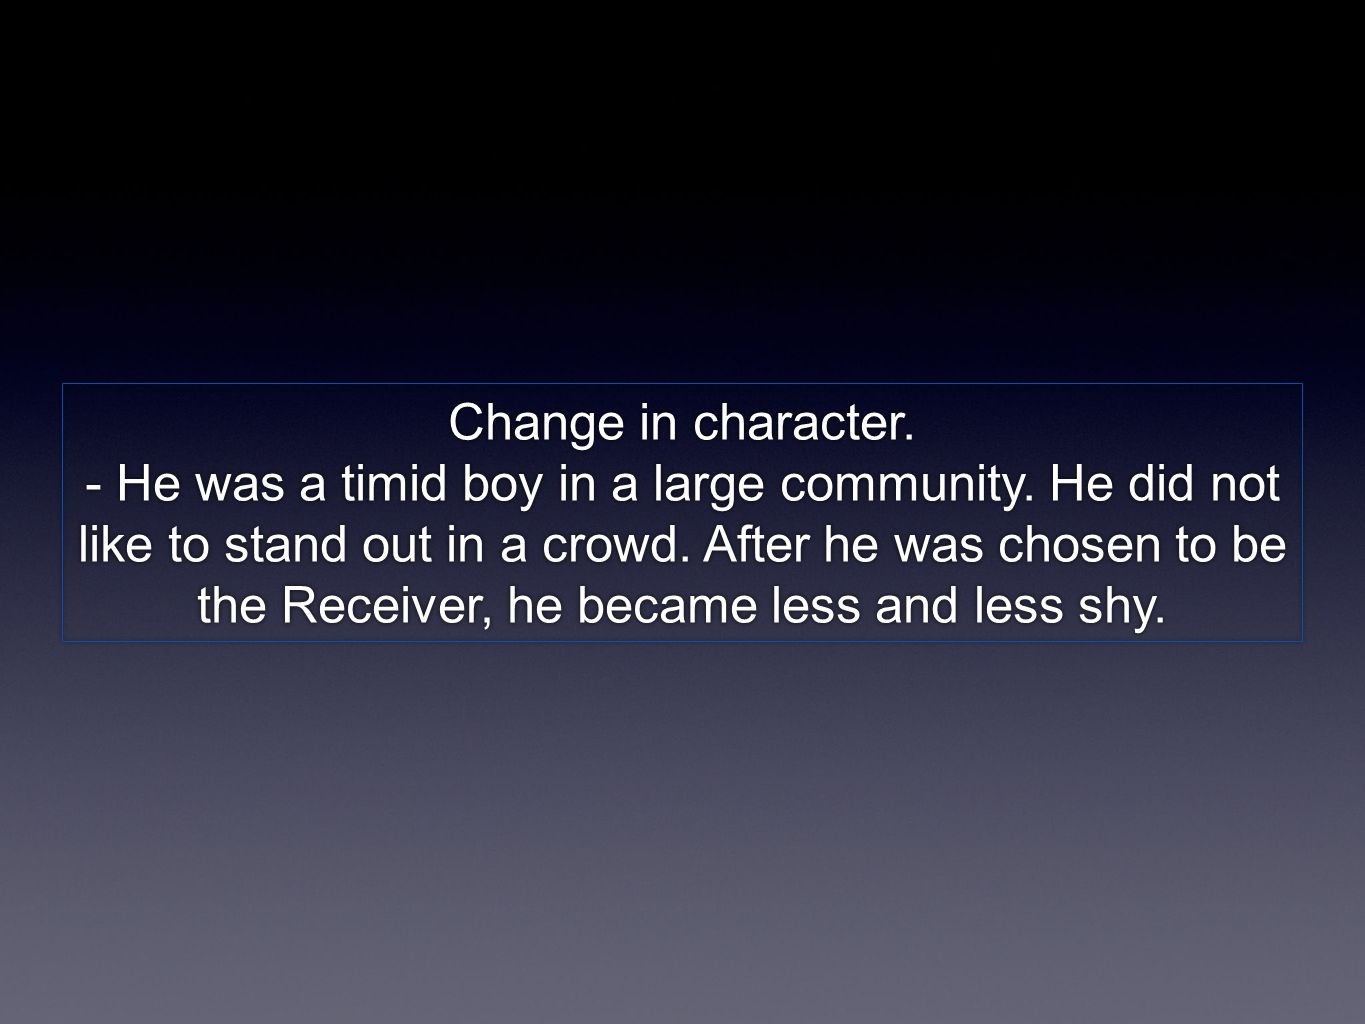 Change in character. - He was a timid boy in a large community.